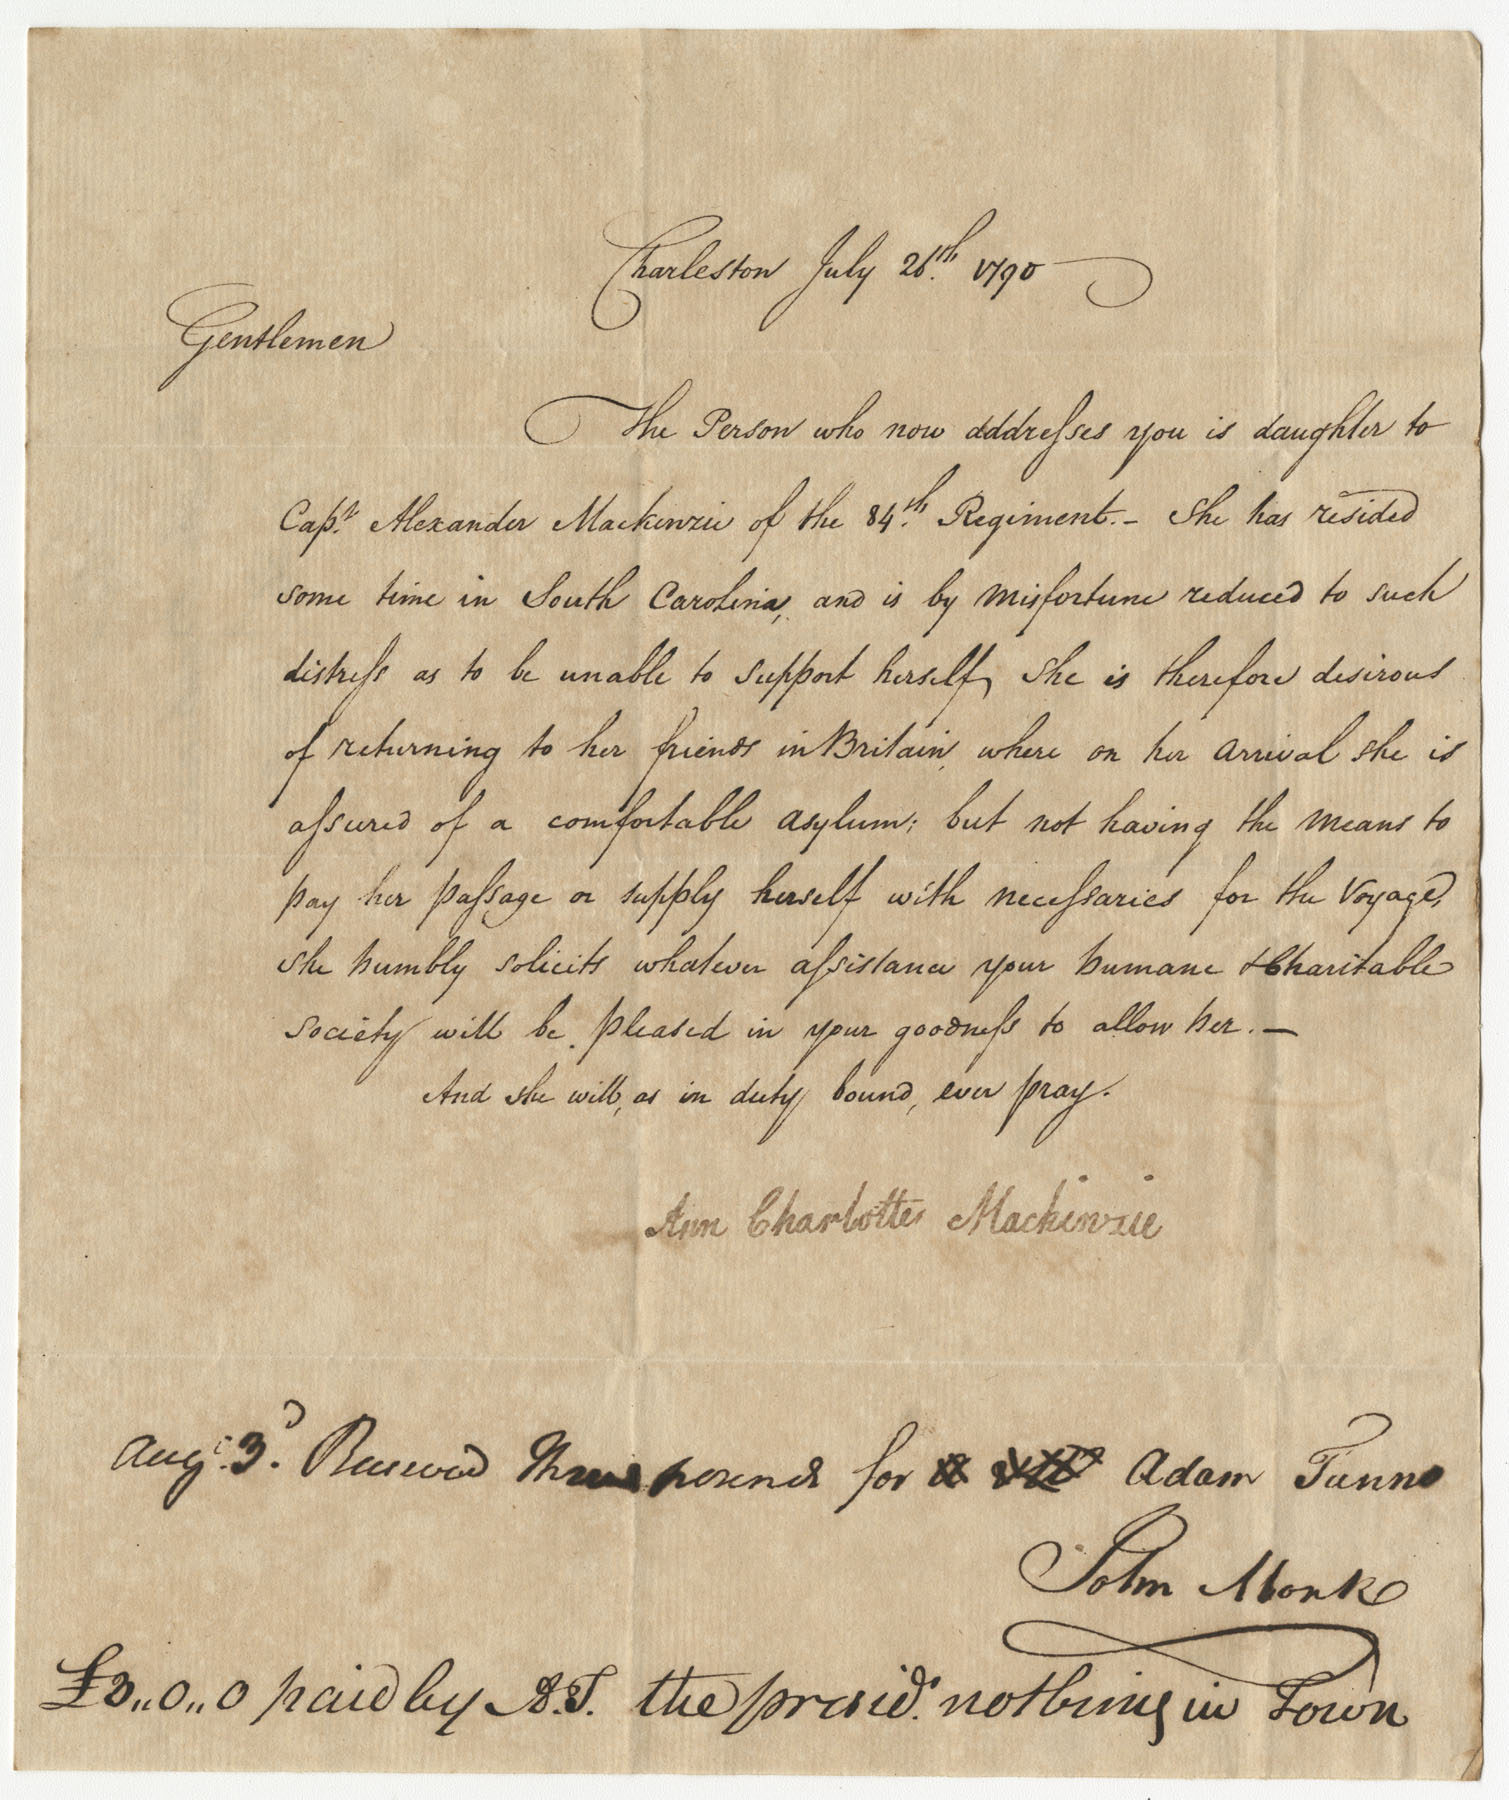 Petition from Ann Charlotte Mackinzie to the St. Andrew's Society